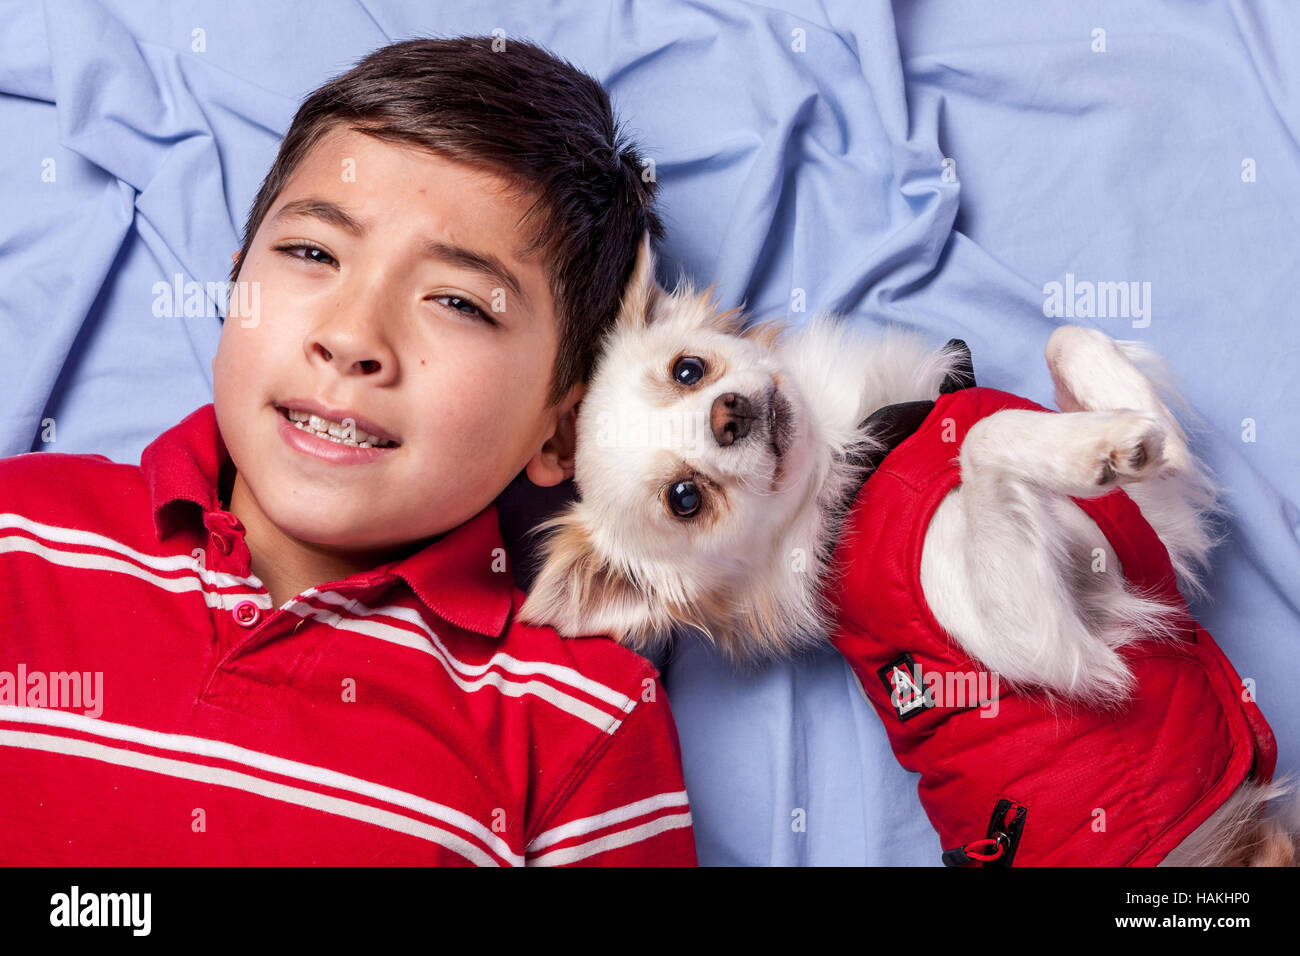 Young boy and his small dog. - Stock Image